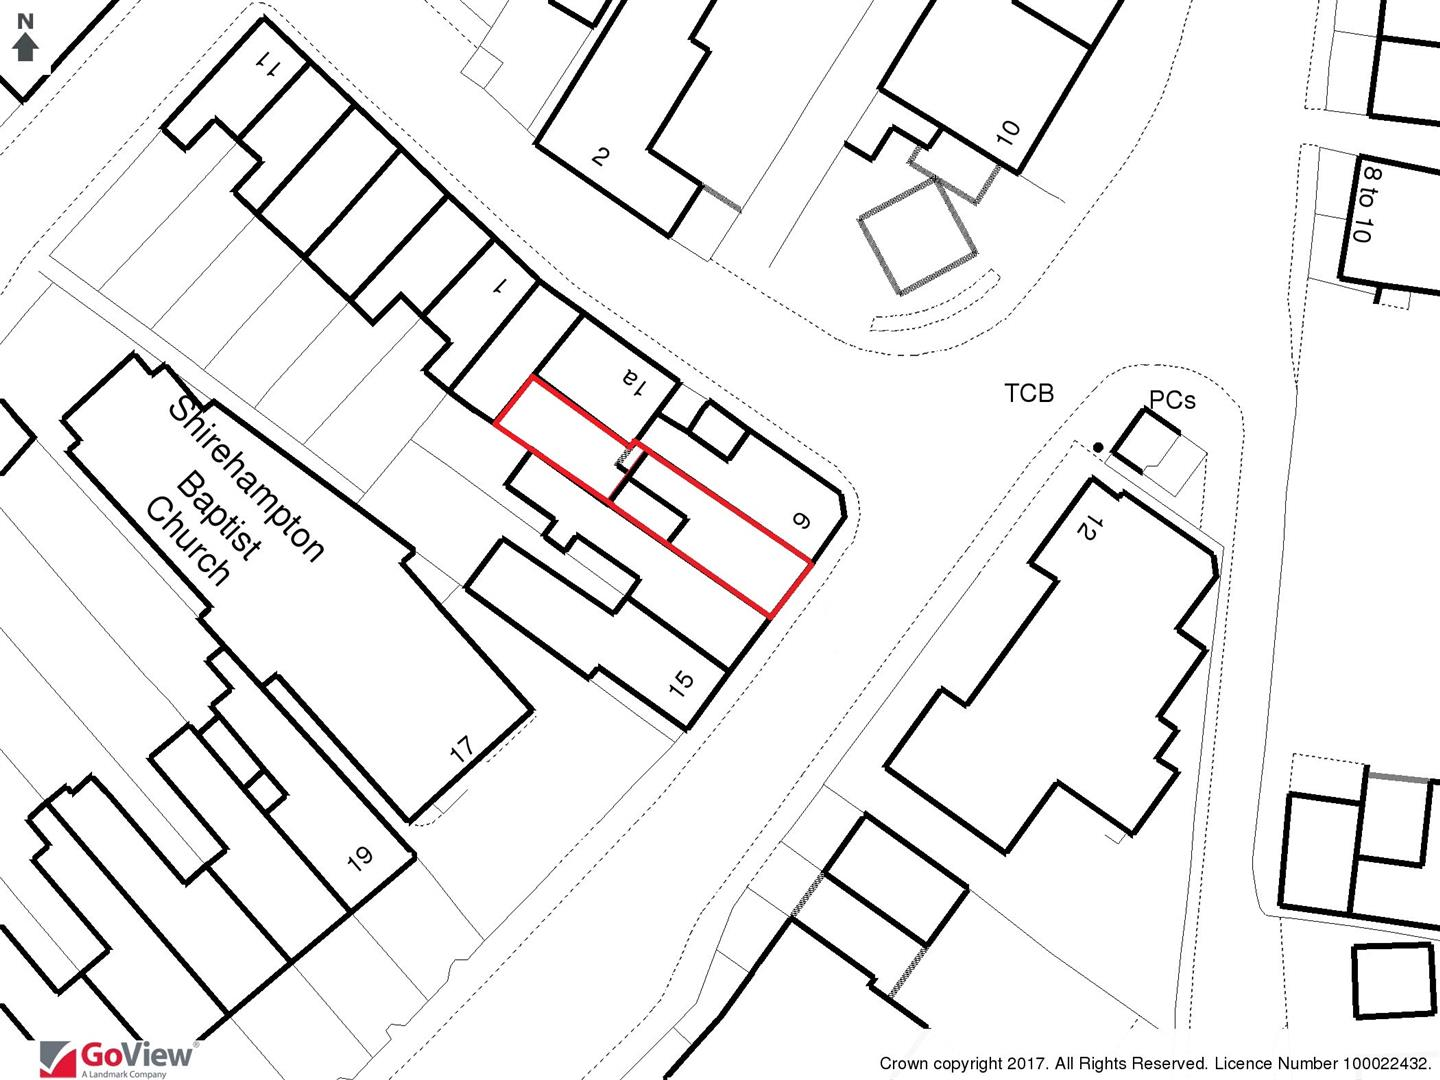 Images for MIXED USE FREEHOLD - DEVELOPMENT OPPORTUNITY EAID:hollismoapi BID:21